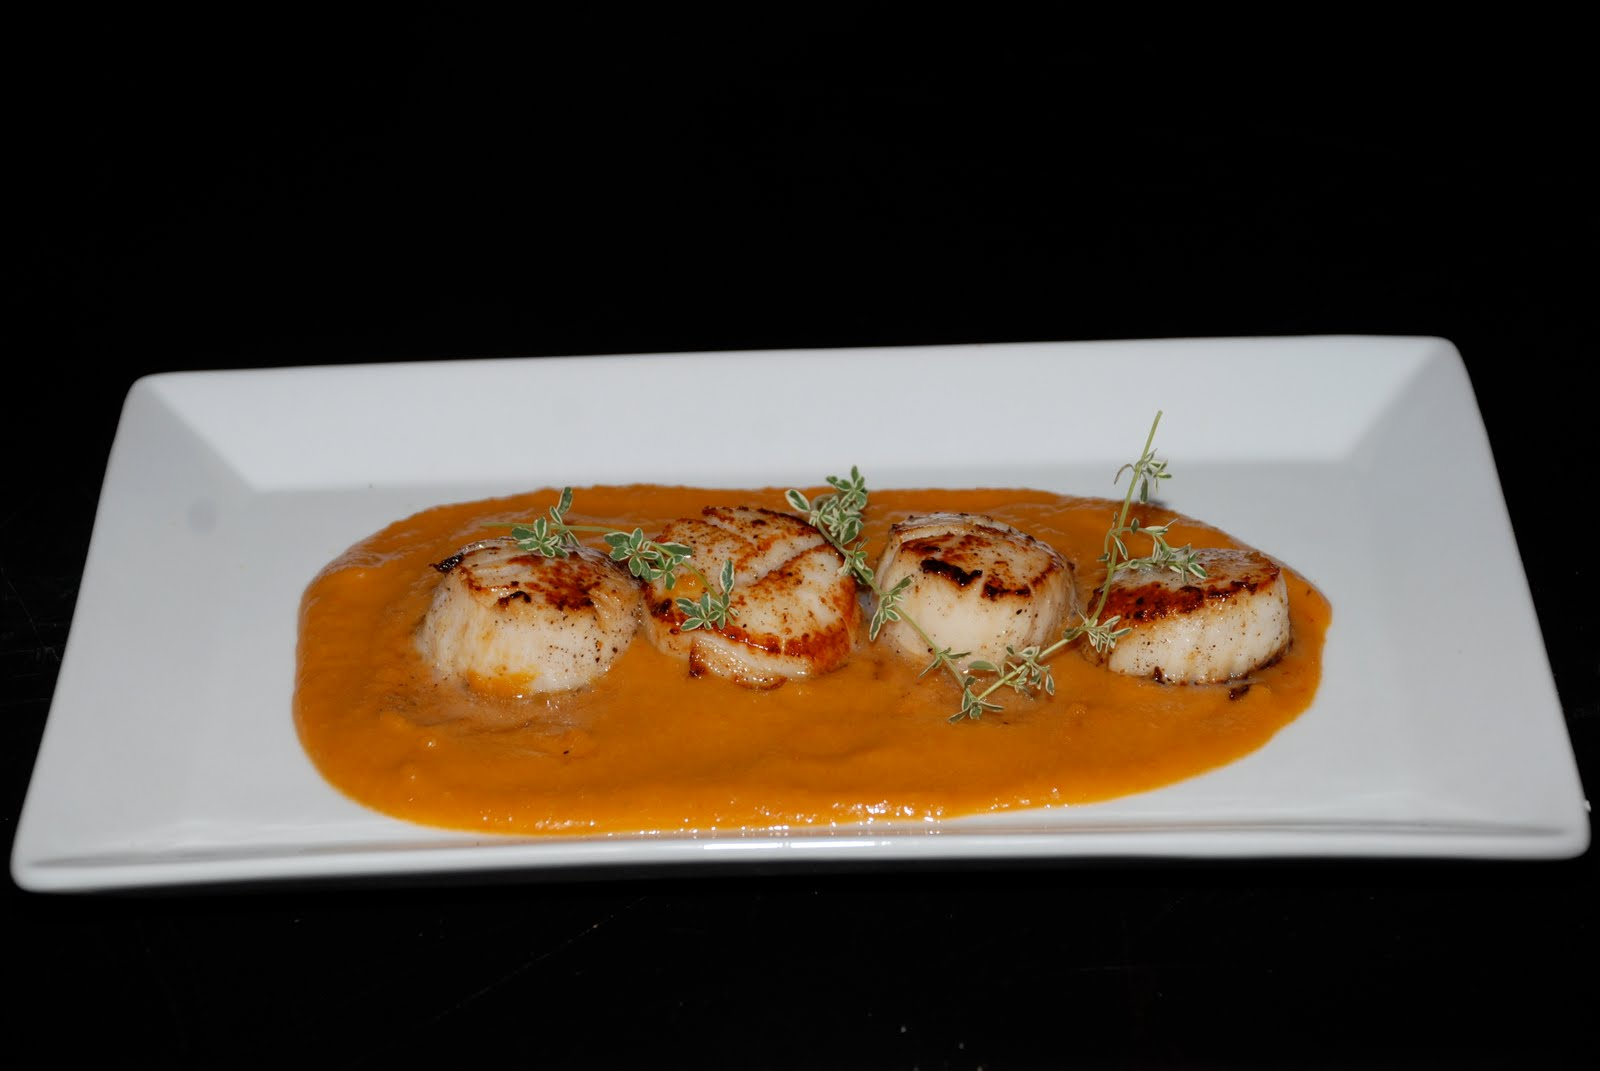 Tomatoes on the Vine: Pan- Seared Scallops with Carrot-Ginger Sauce